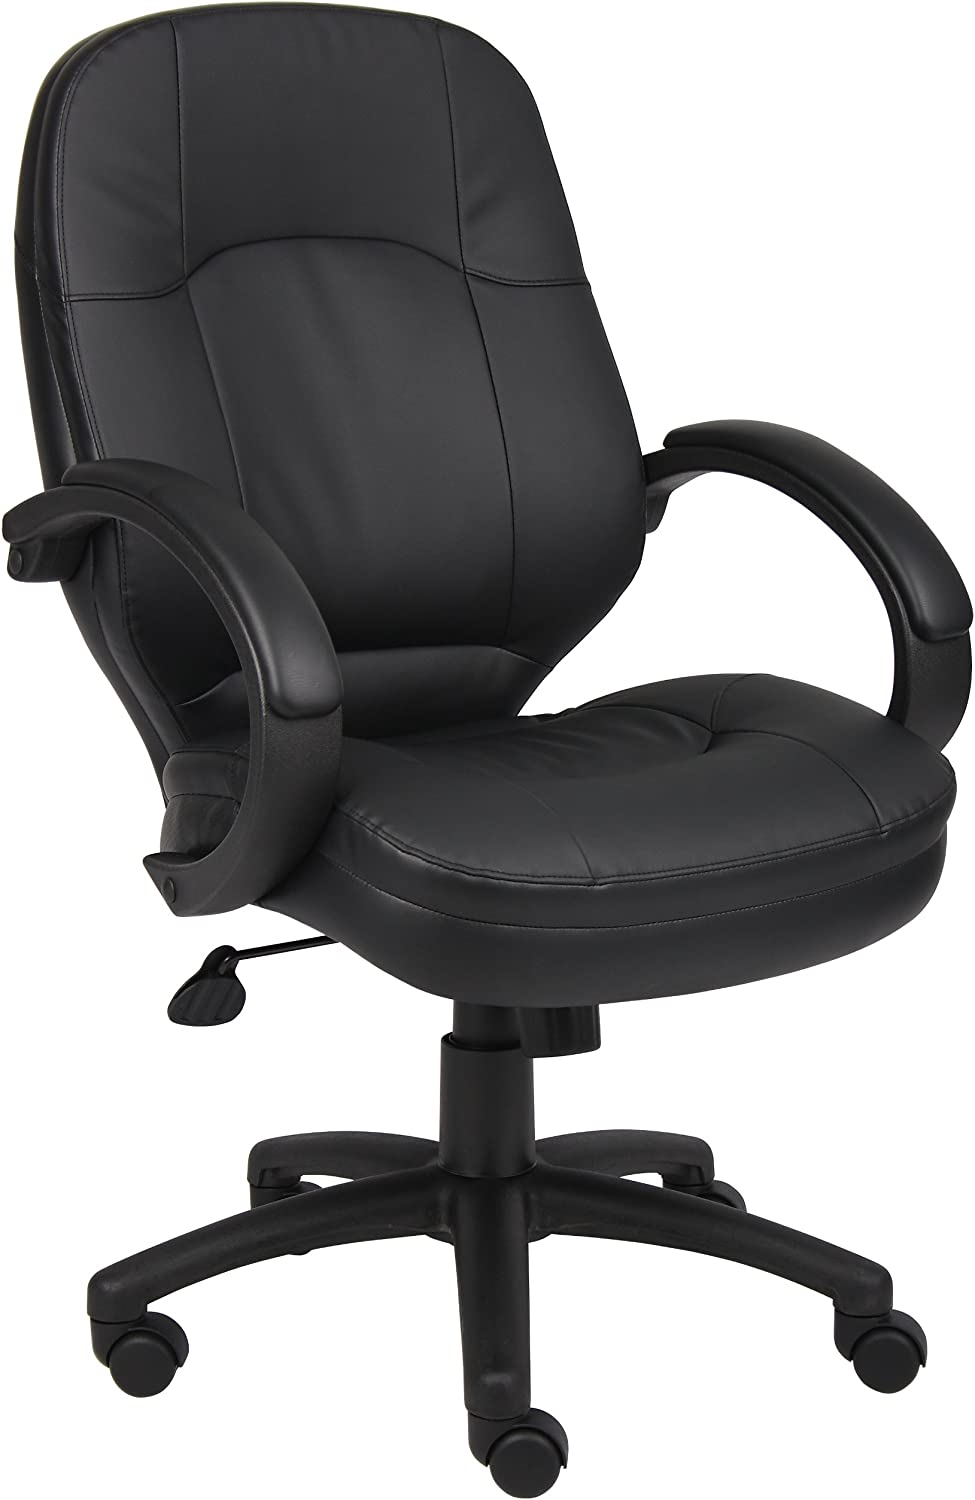 Boss Office Products LeatherPlus Executive Chair in Black